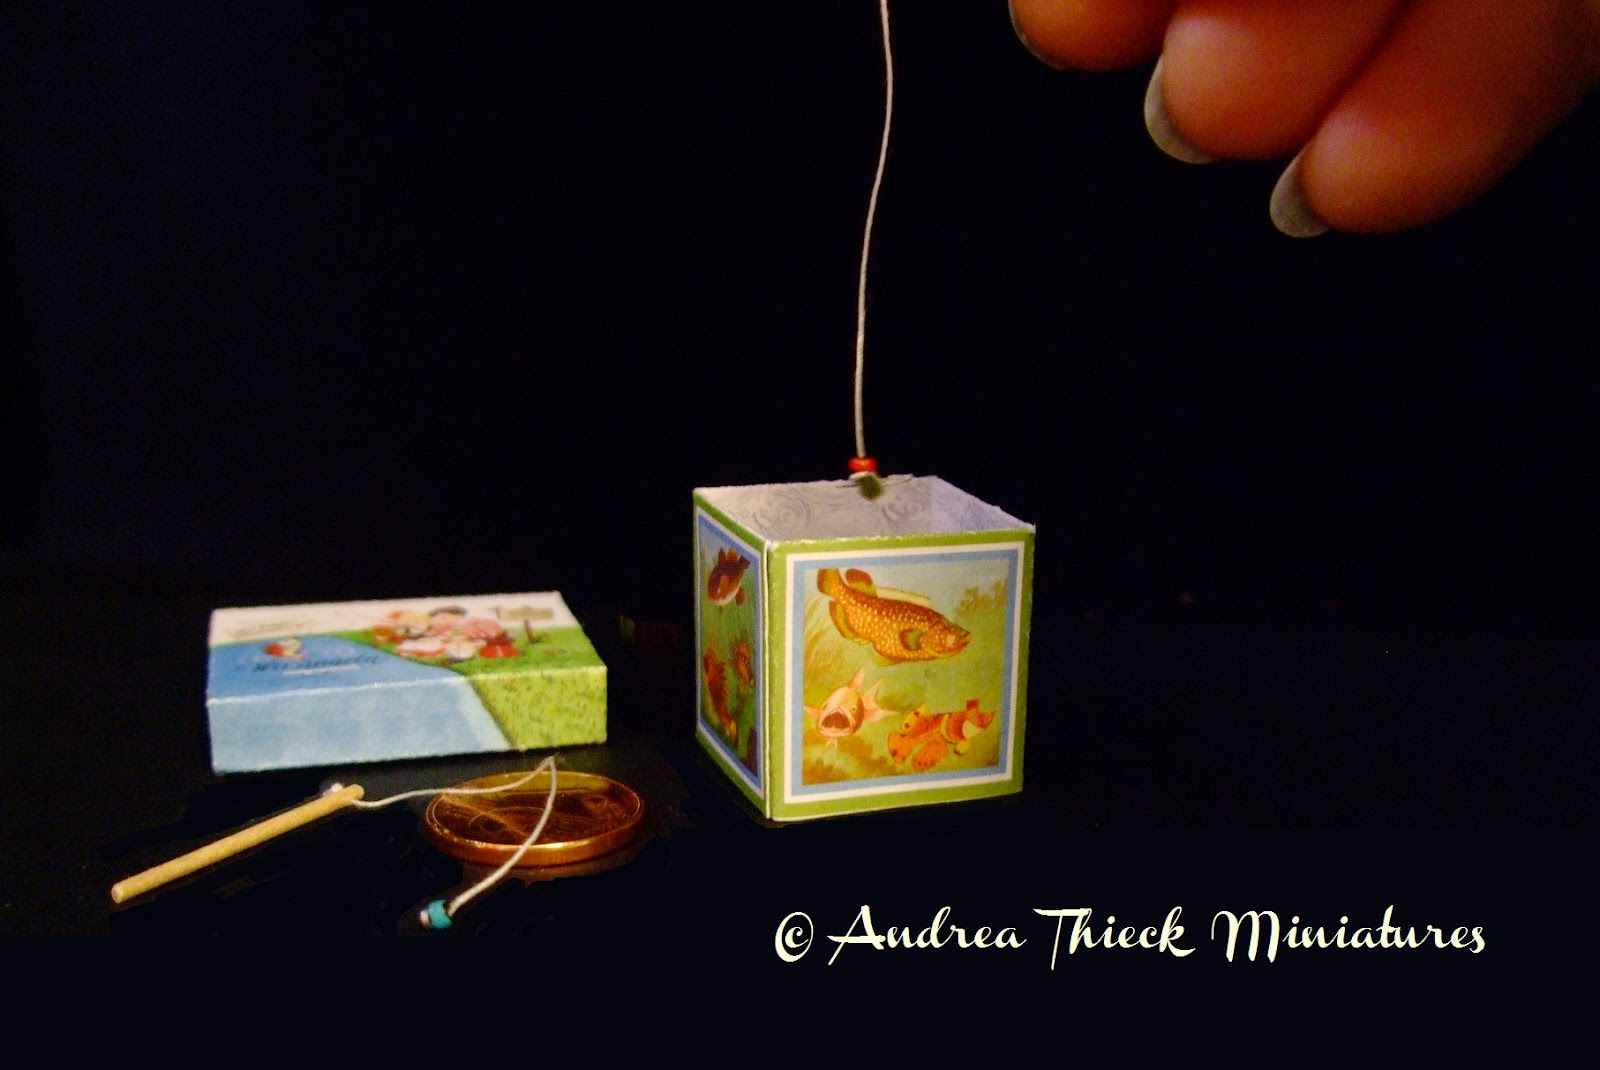 Andrea thieck miniatures fish pond game angelspiel for Fish pond game